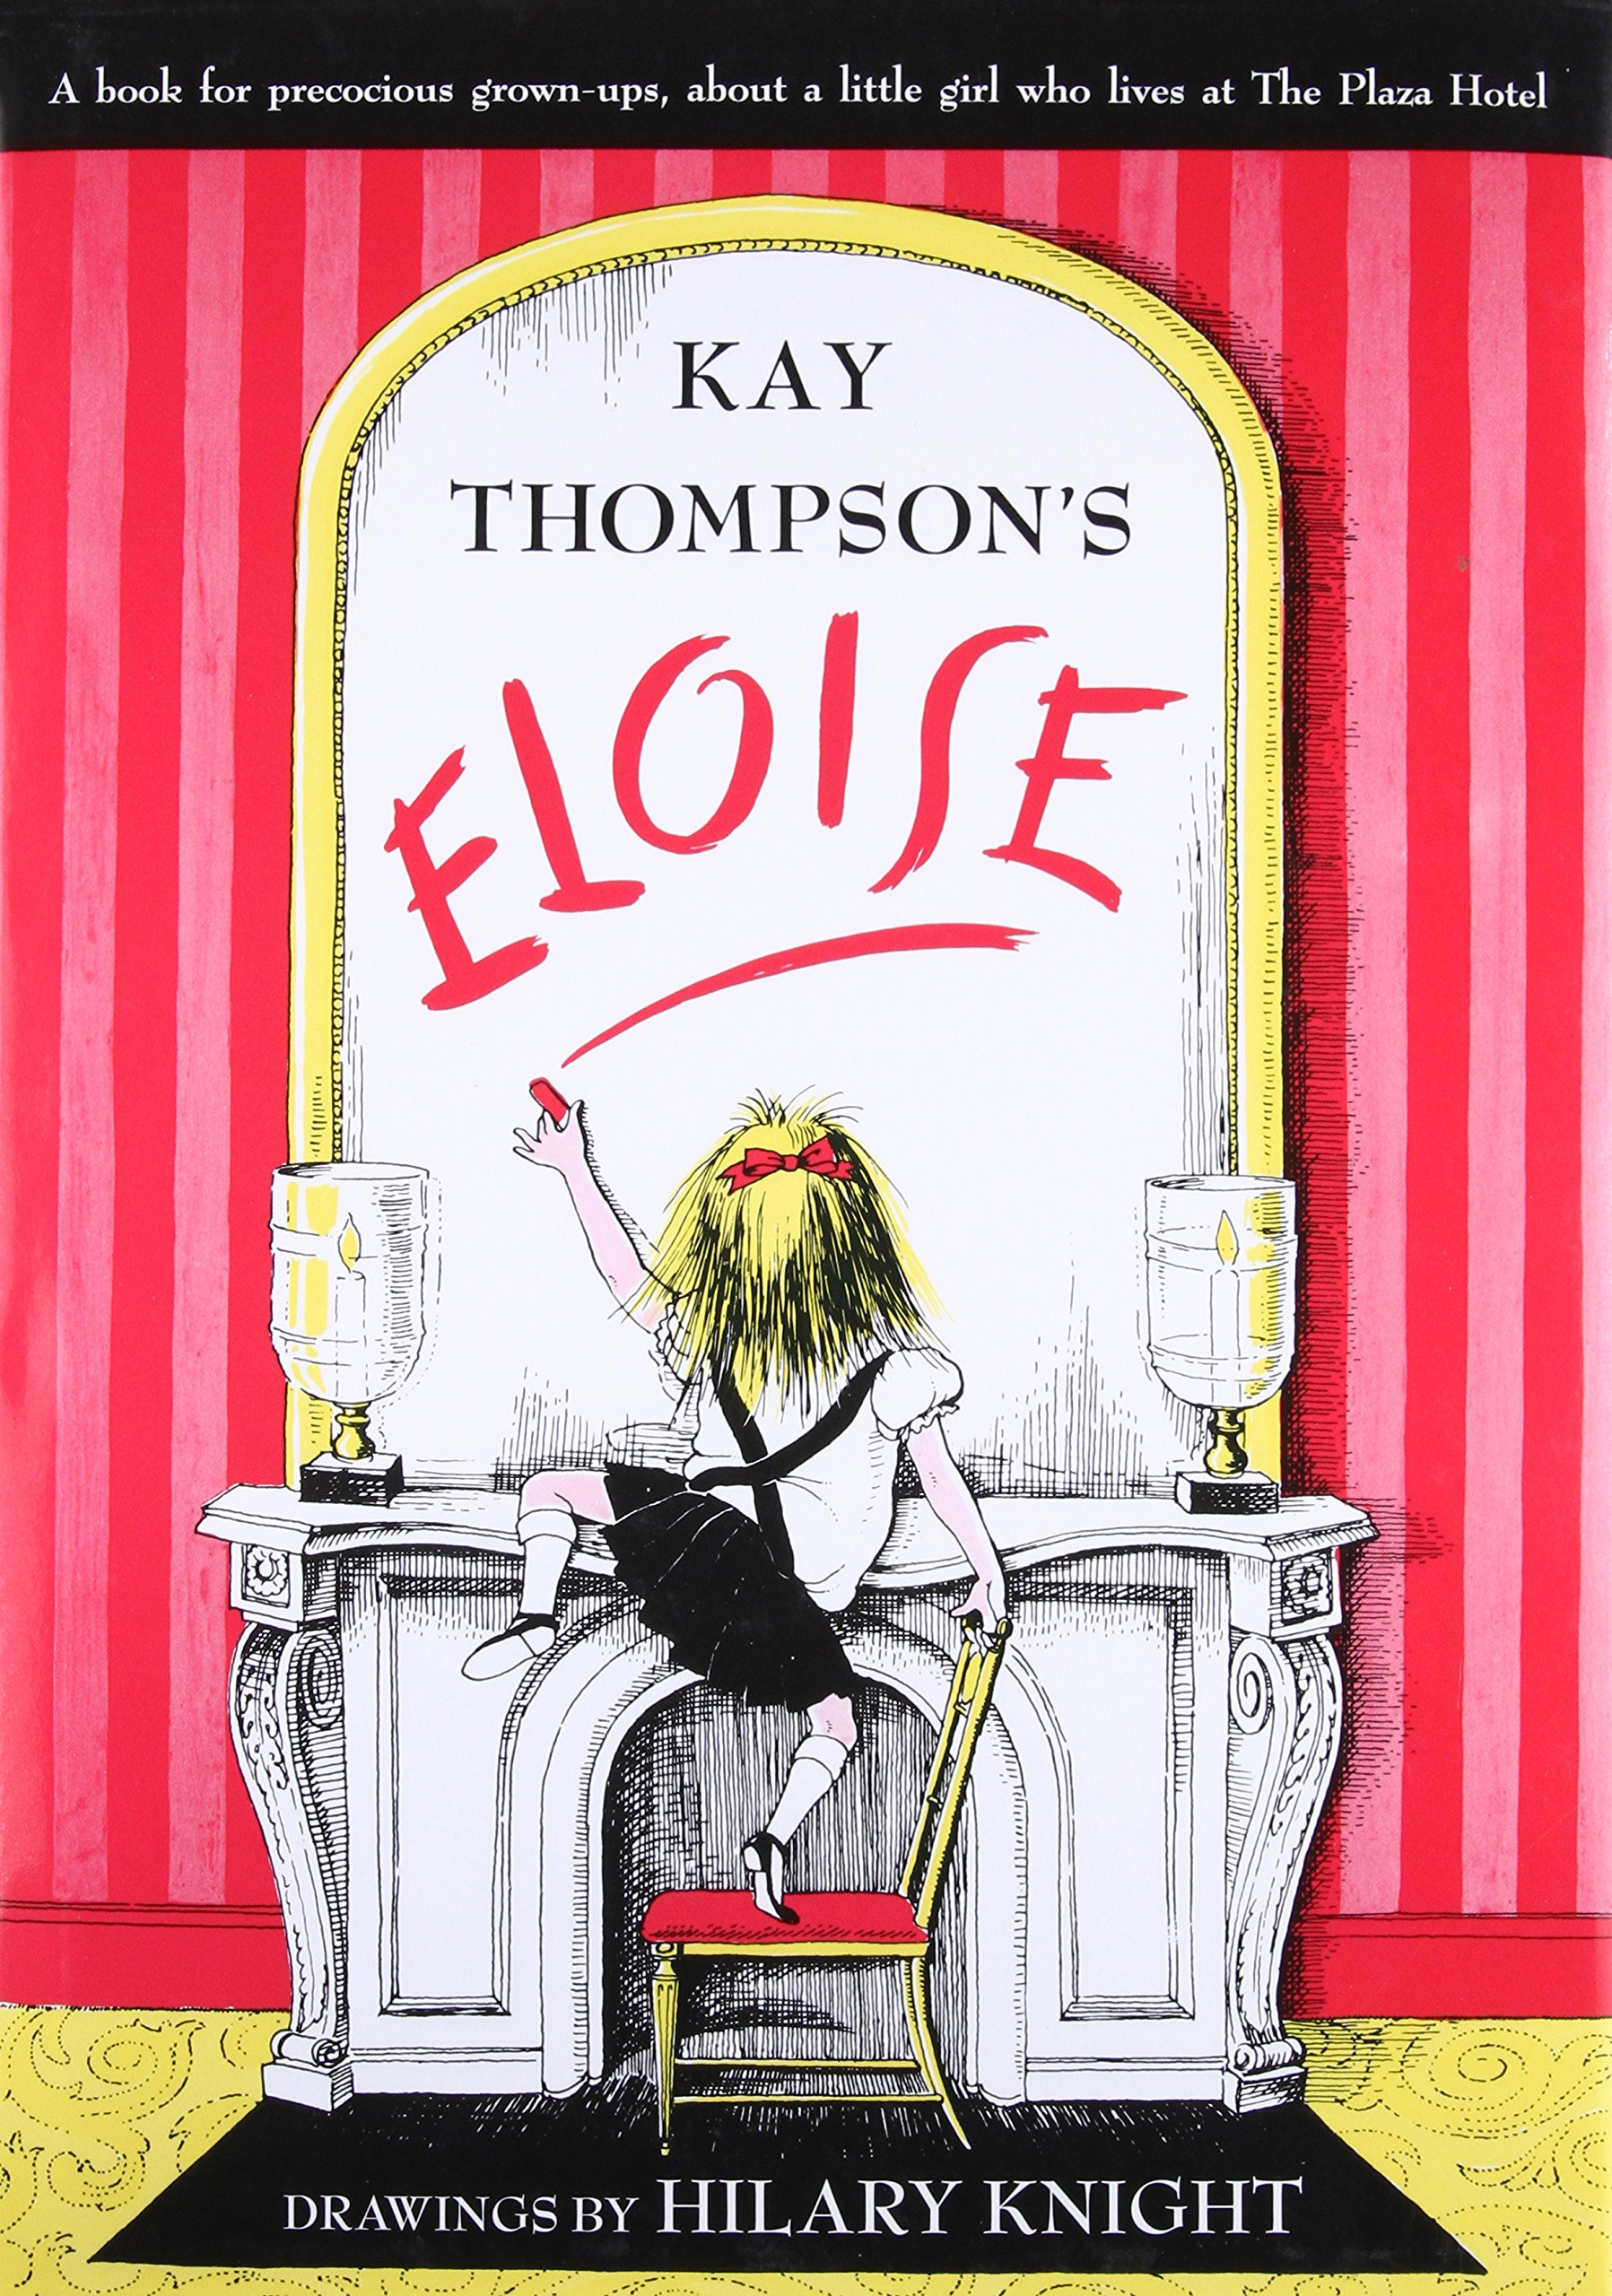 Eloise - Valentine's Day Books for Kids